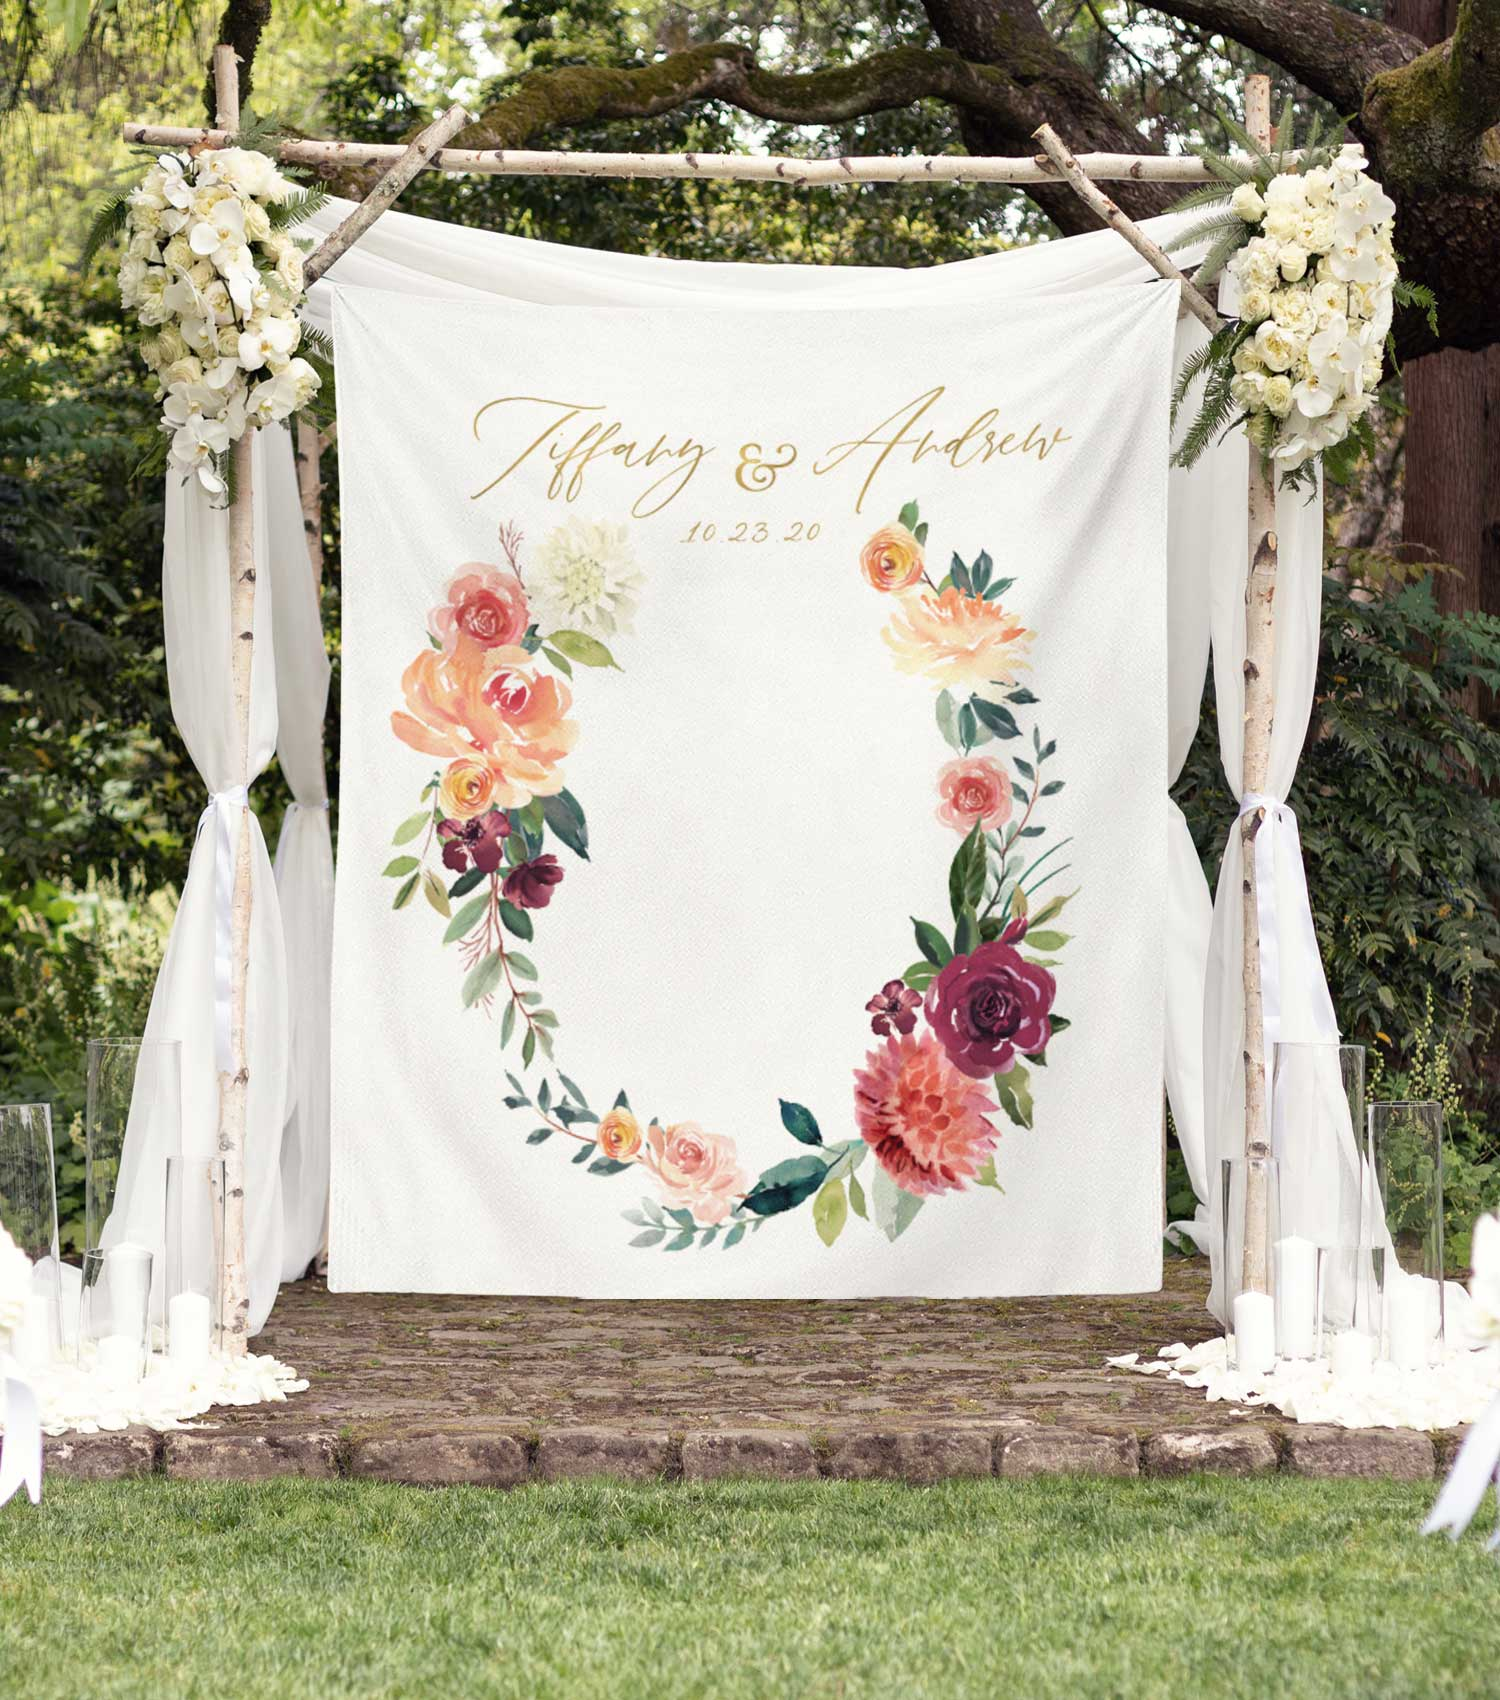 Fall Floral Wedding Photo Booth Backdrop Ideas | Blushing Drops